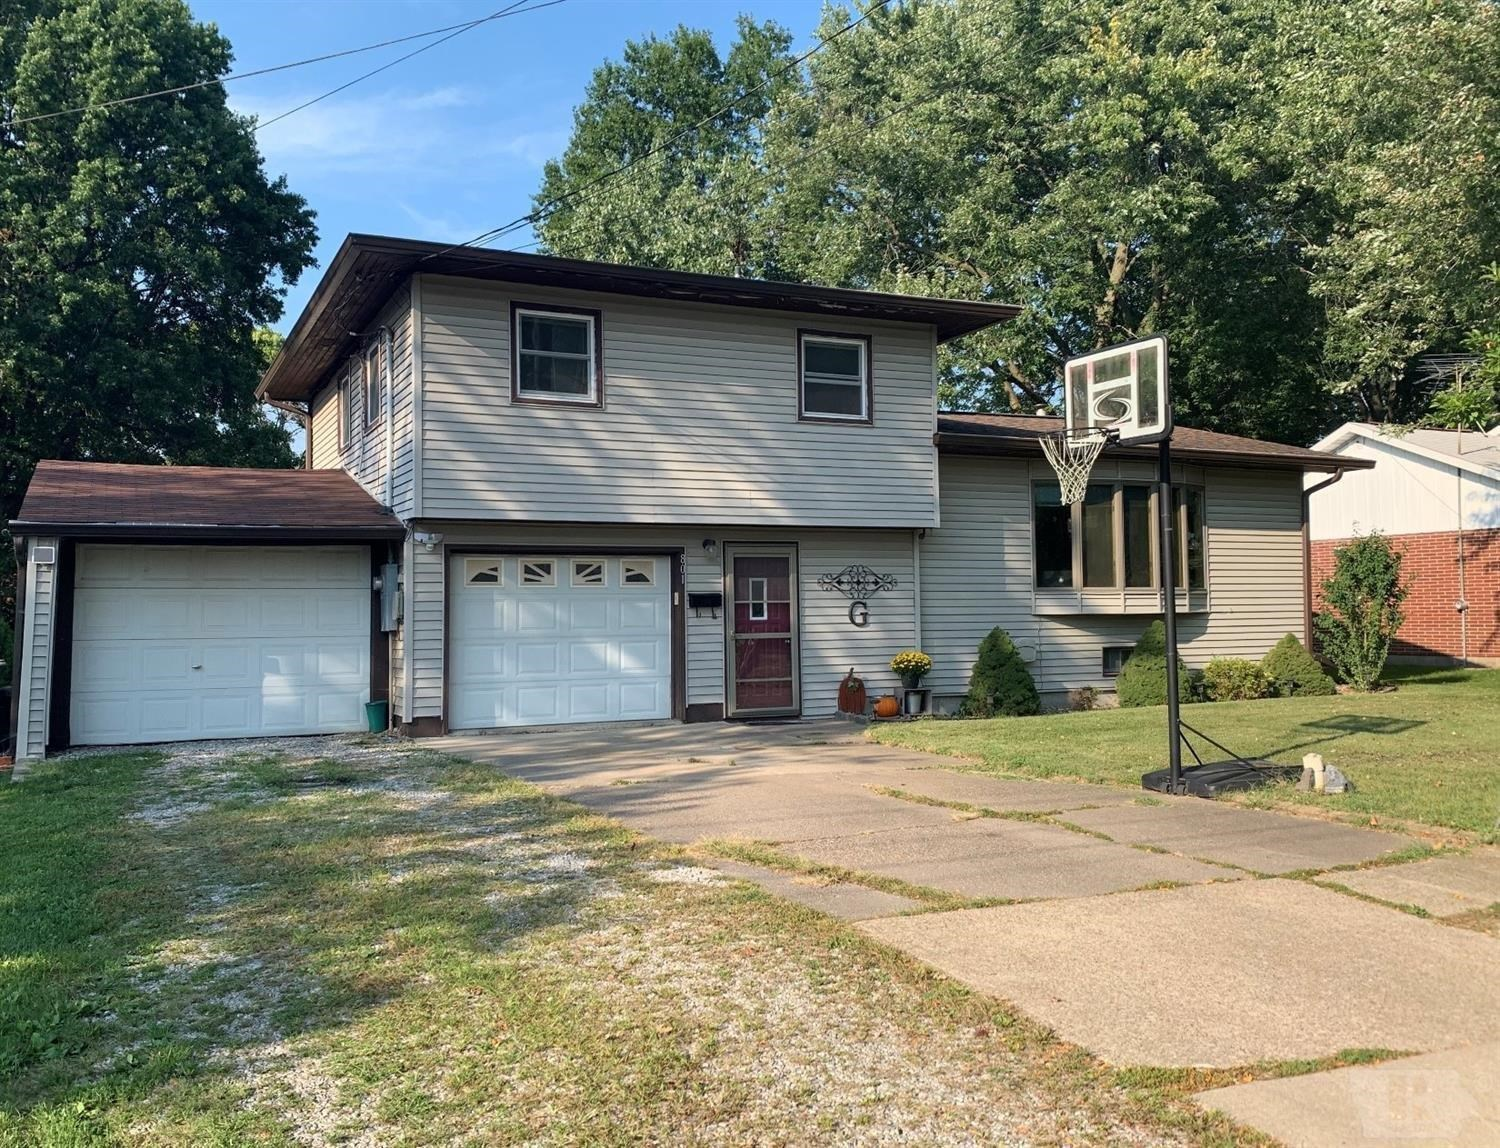 3-Bedroom, 1 1/2 Bath Home For Sale in Fairfield, IA